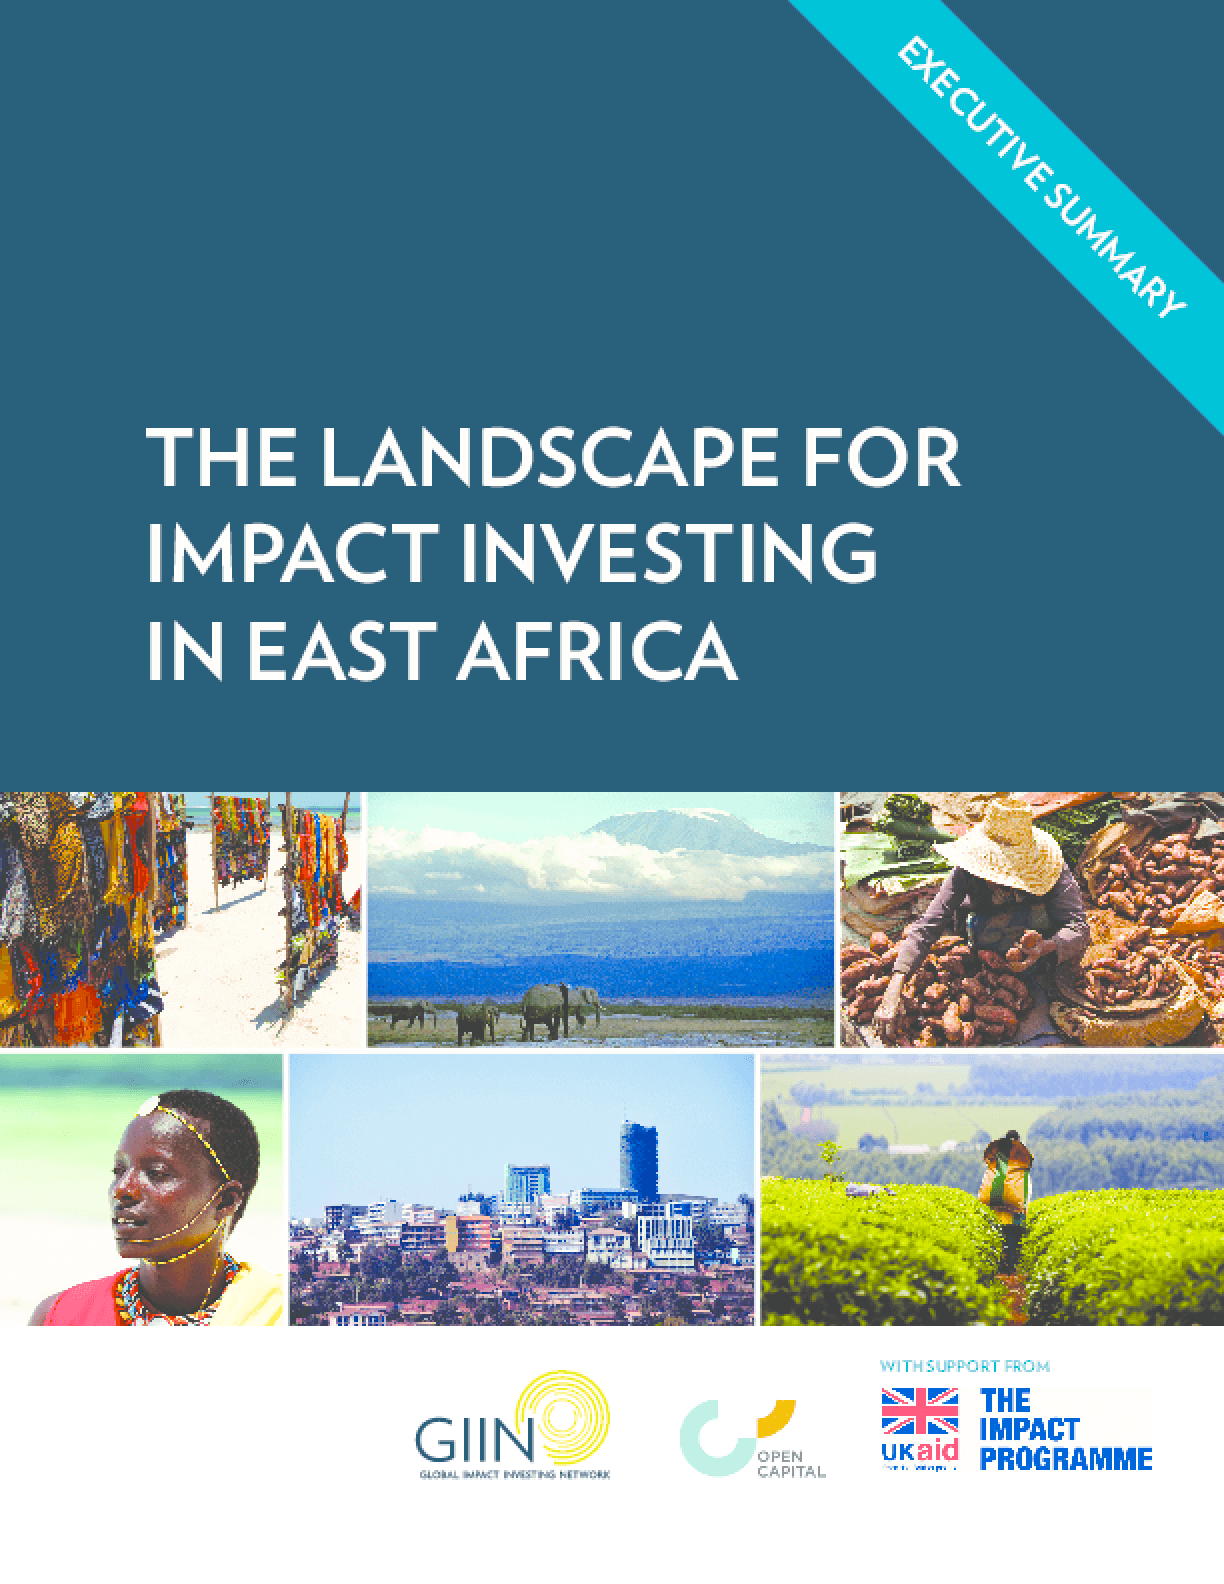 The Landscape for Impact Investing in East Africa